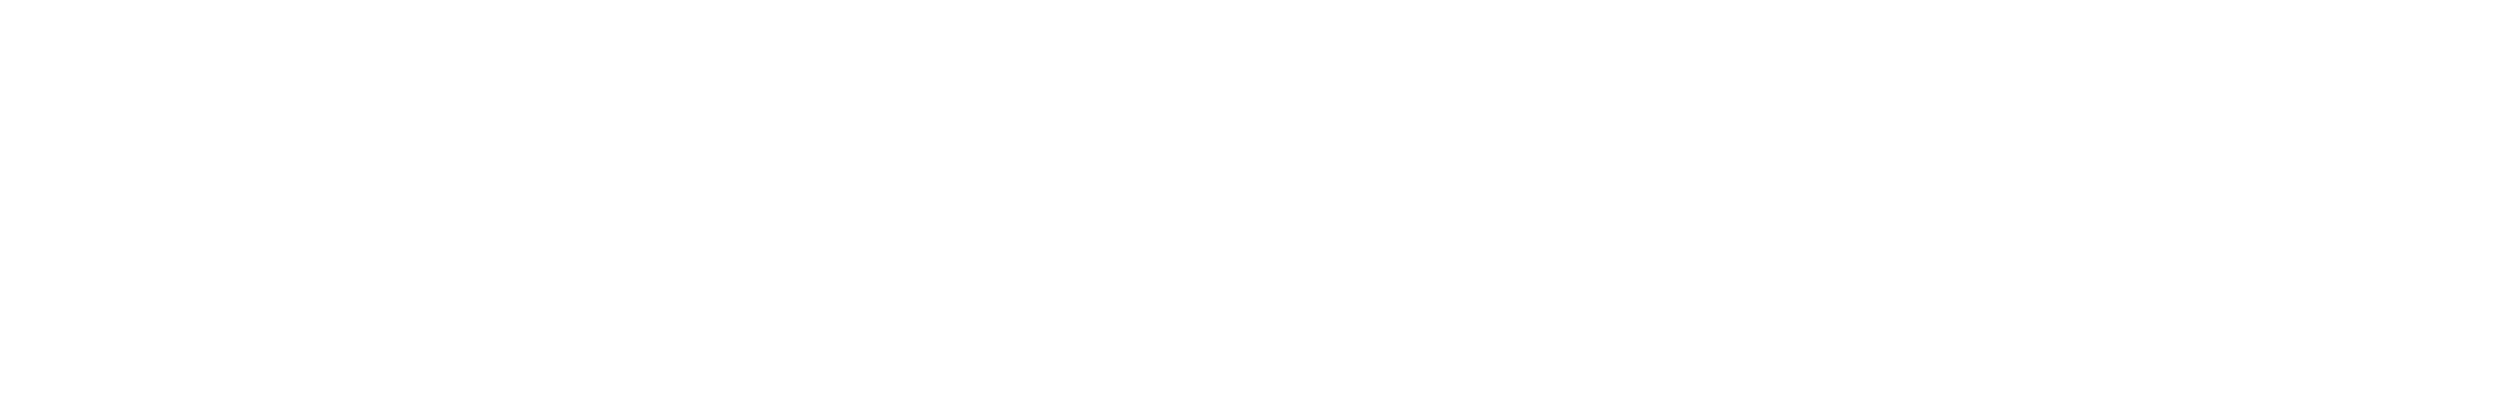 providers-sdk-icon.png